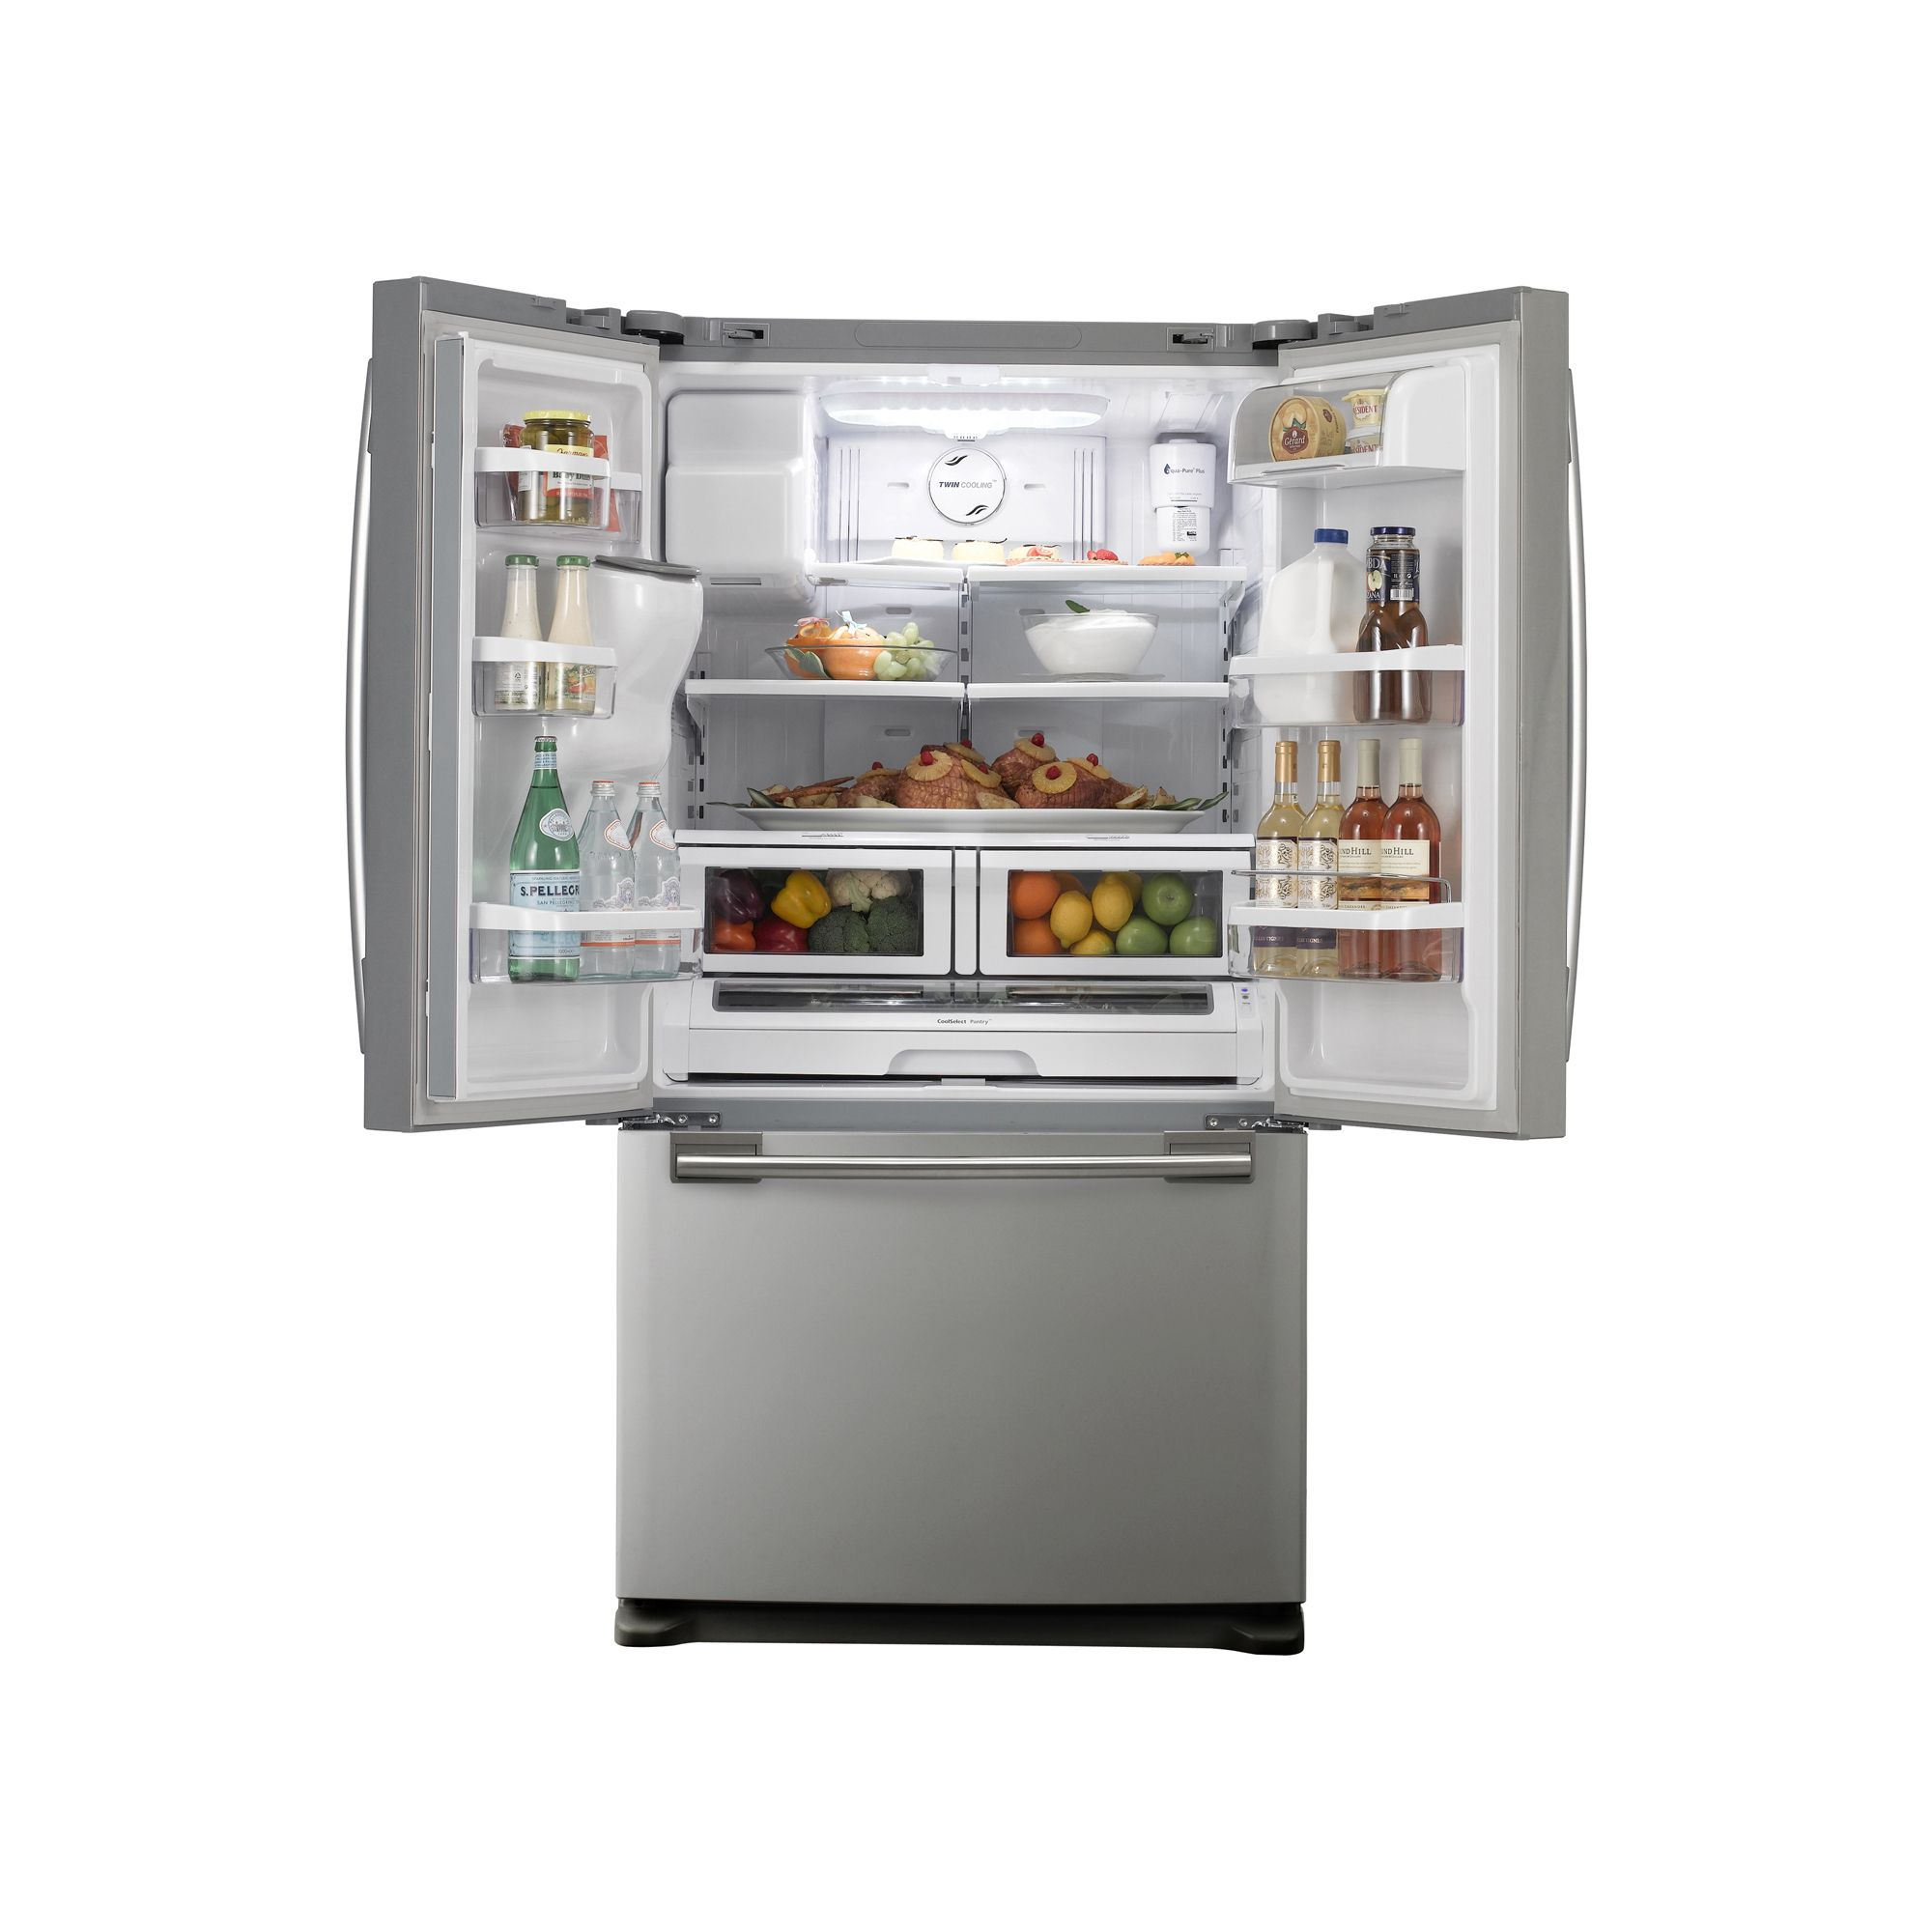 Samsung 26.0 cu. ft. French-Door Bottom Freezer Refrigerator